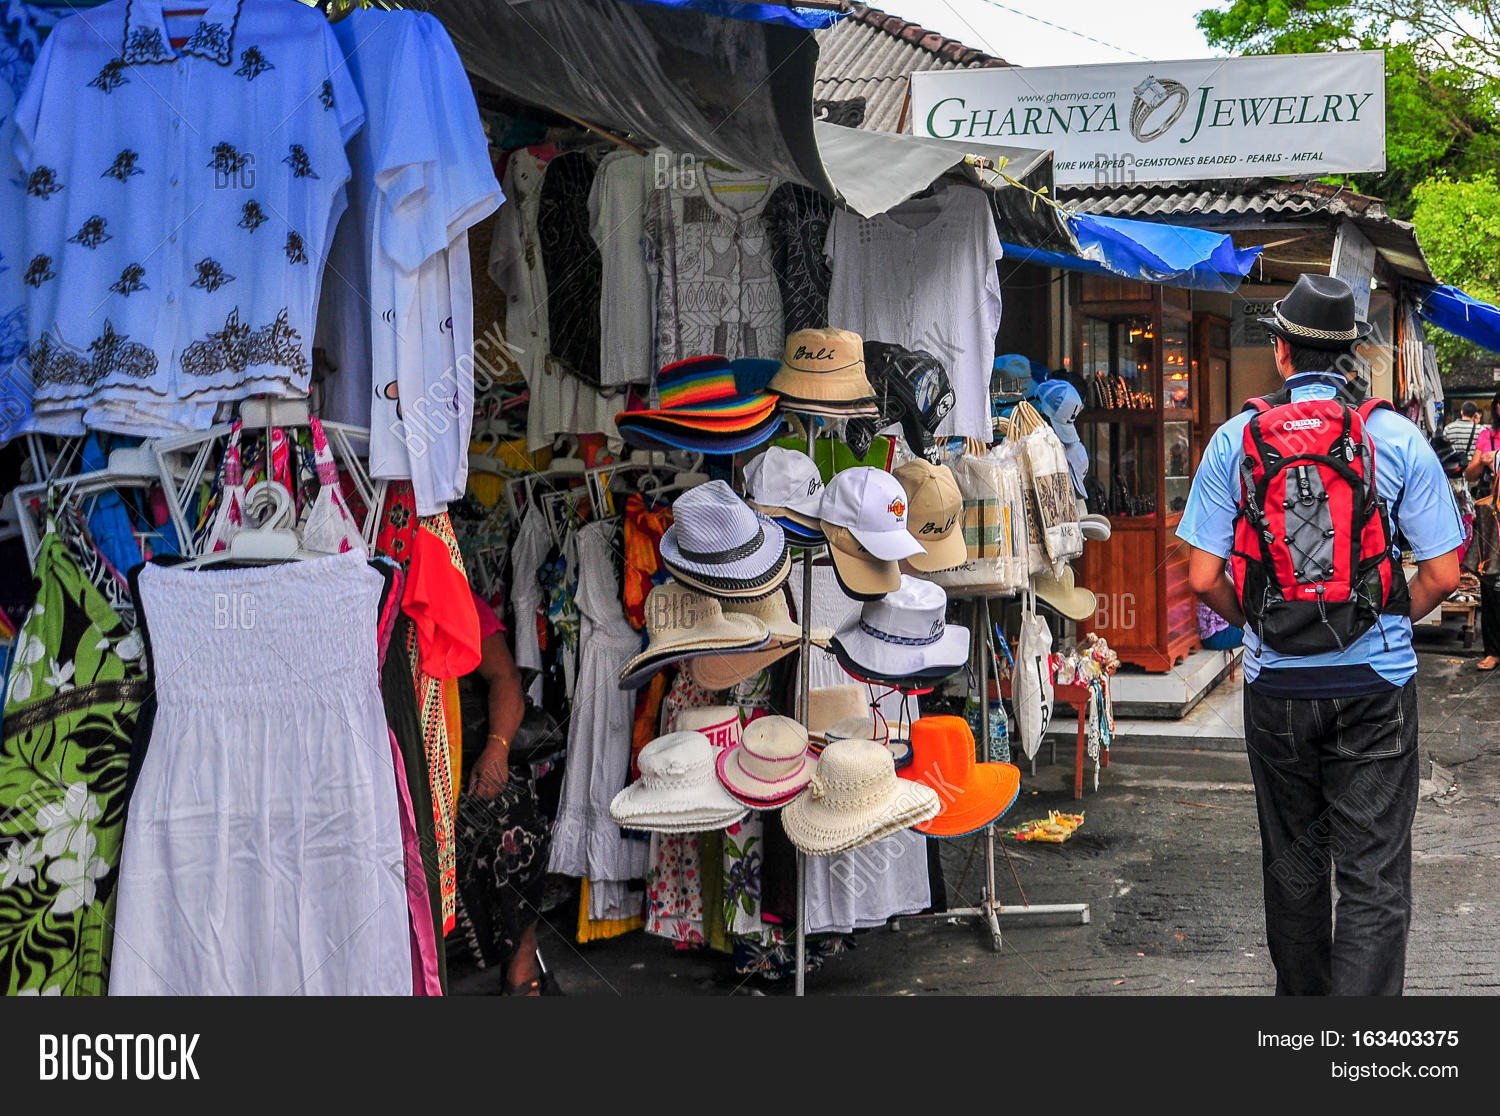 Baliindonesia May 28 Image Photo Free Trial Bigstock Balinese Traditional Market 282010market Stall With Colorful Indigenous Clothes